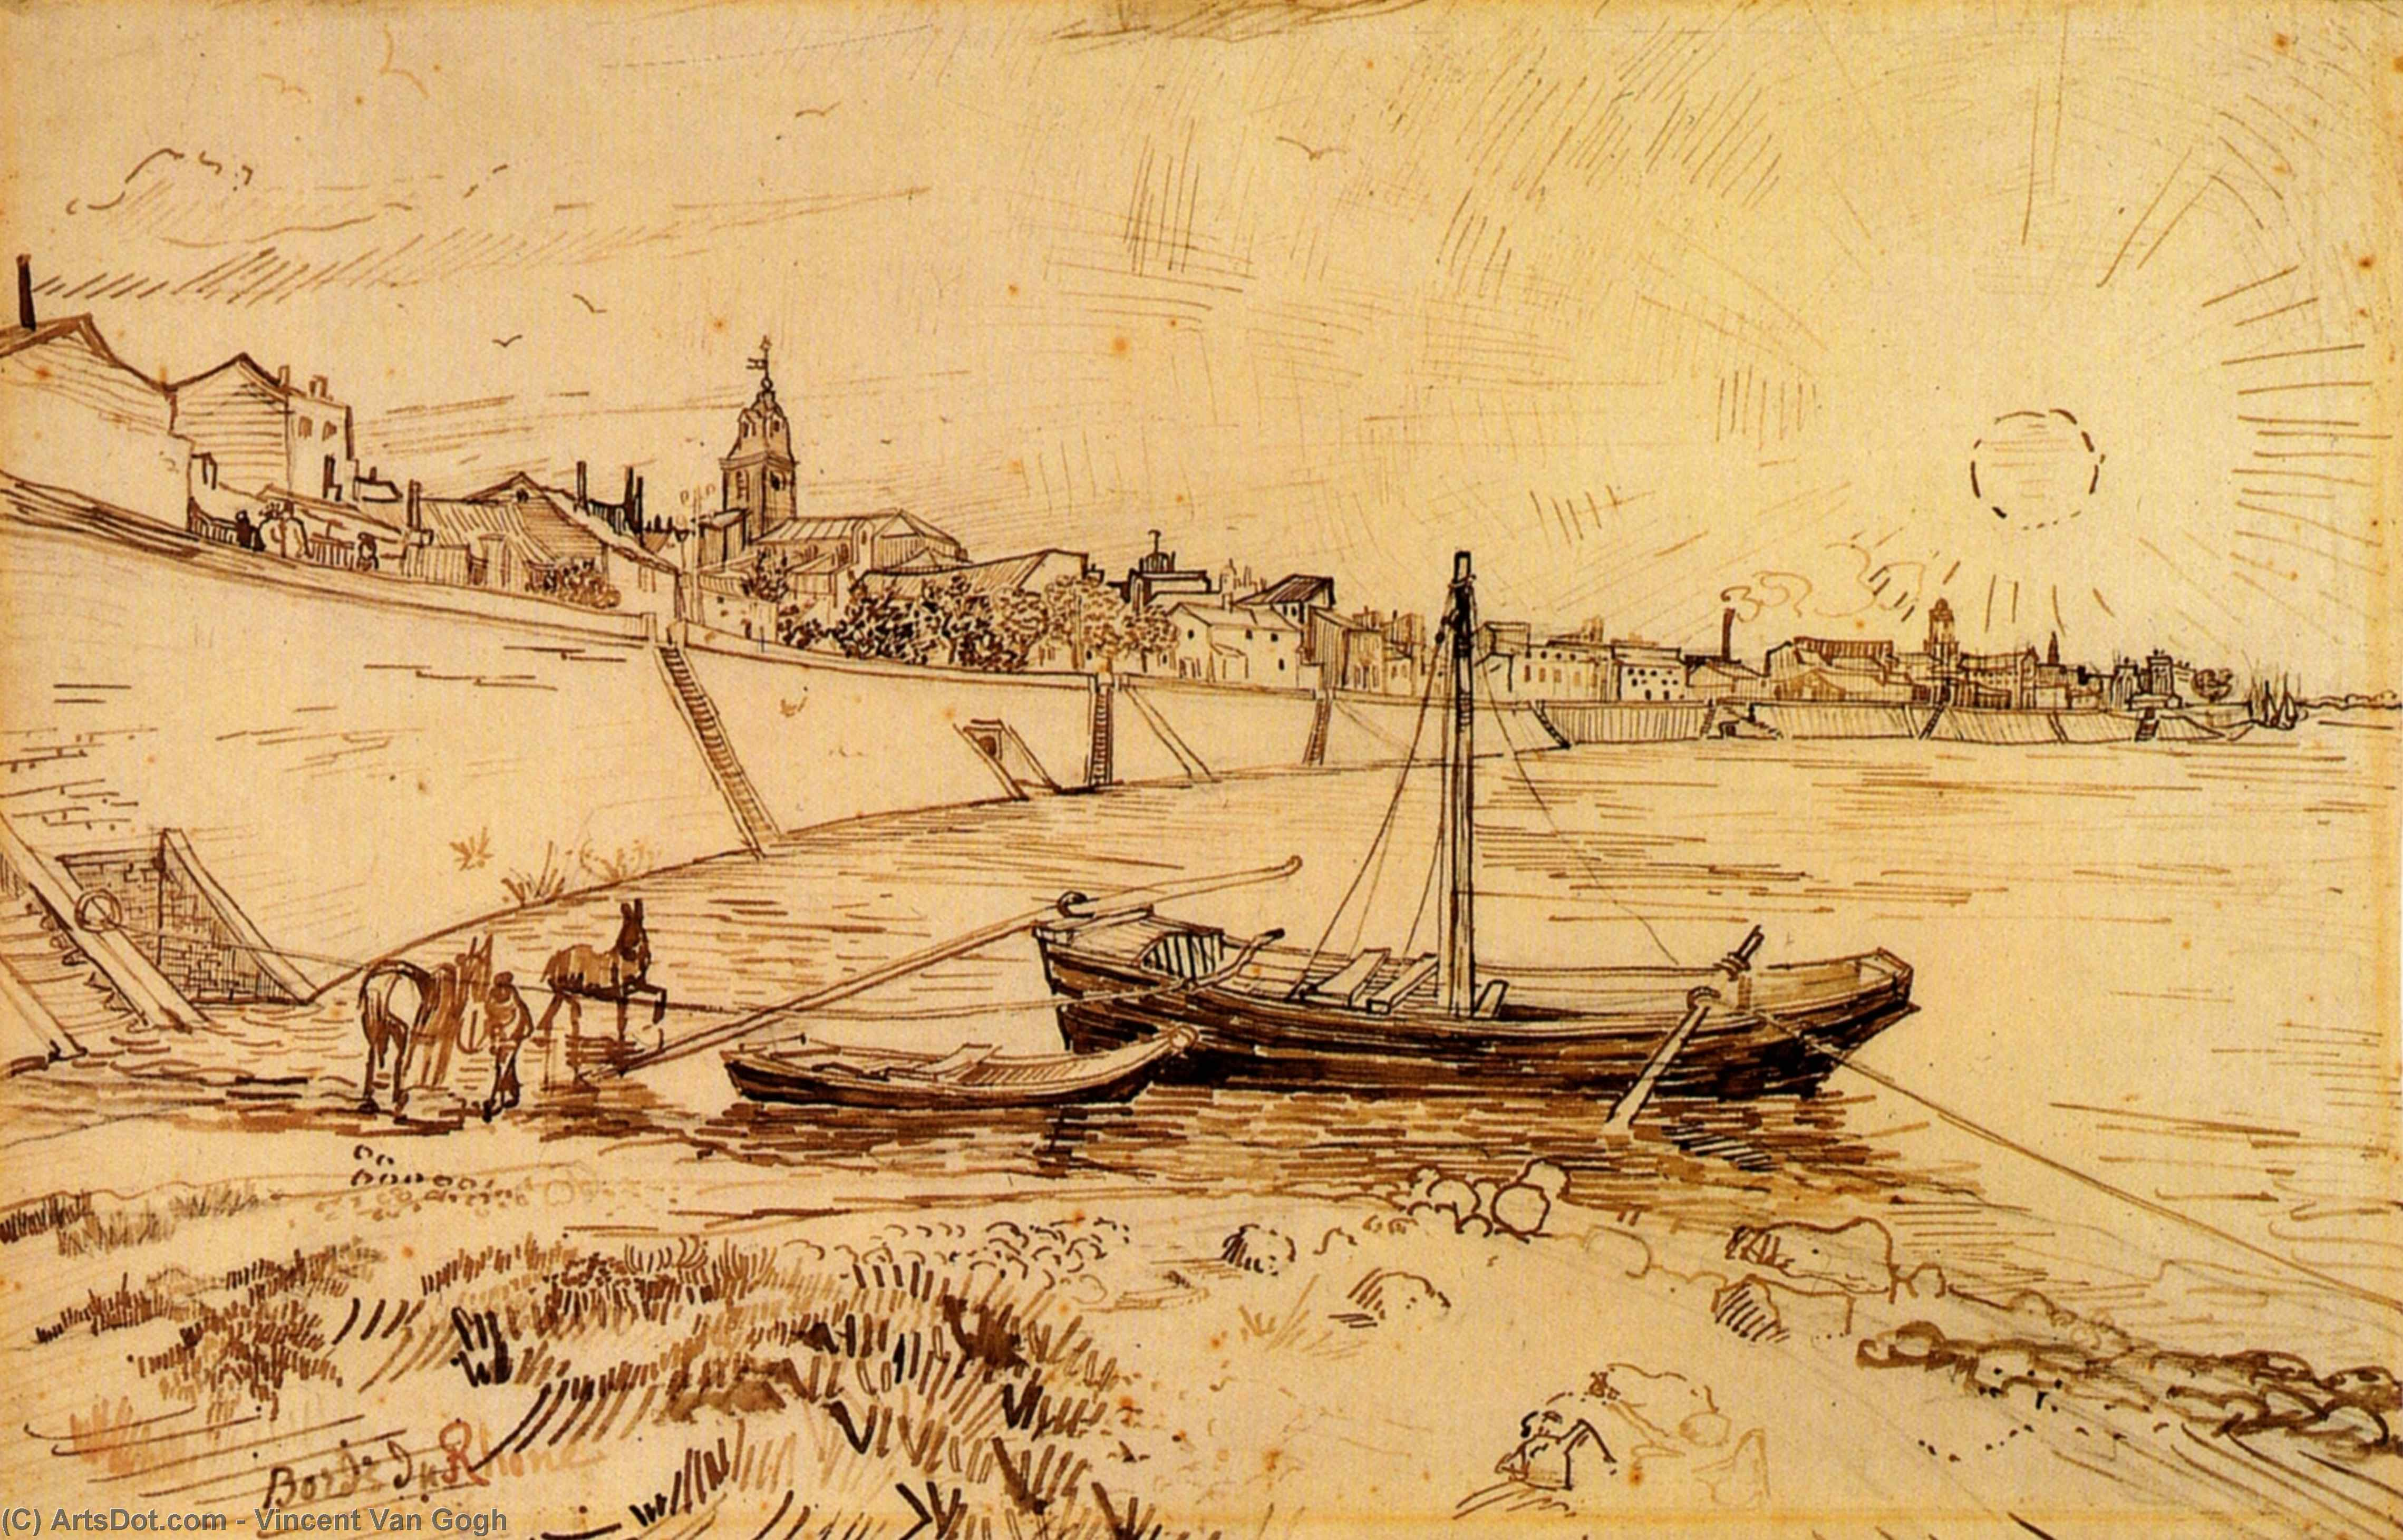 Wikioo.org - The Encyclopedia of Fine Arts - Painting, Artwork by Vincent Van Gogh - Bank of the Rhone at Arles